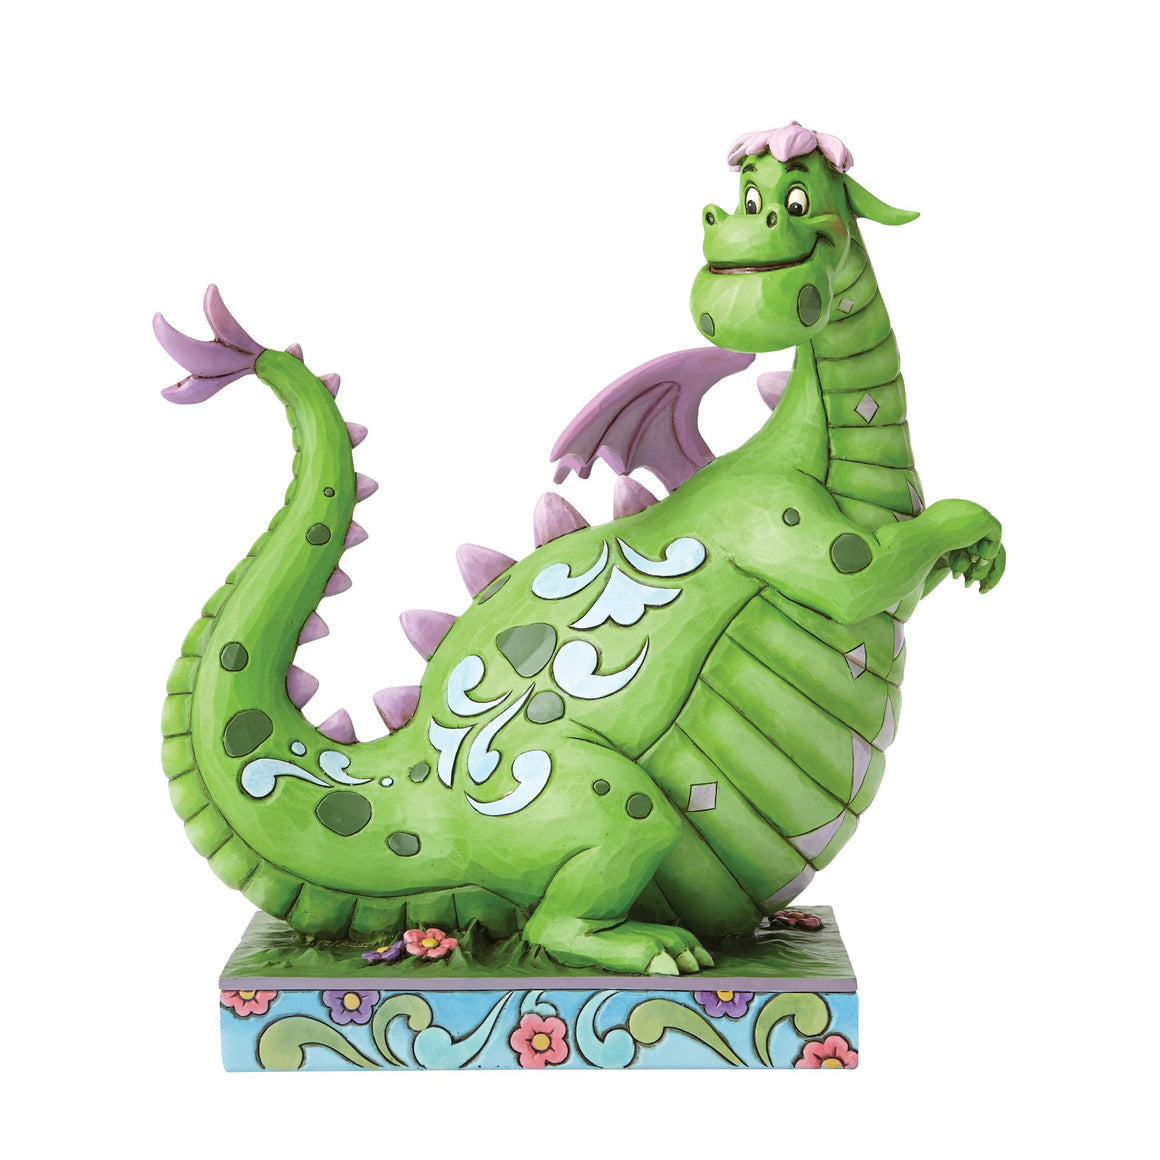 A Boy's Best Friend - Elliott Dragon Figurine - Disney Traditions by Jim Shore